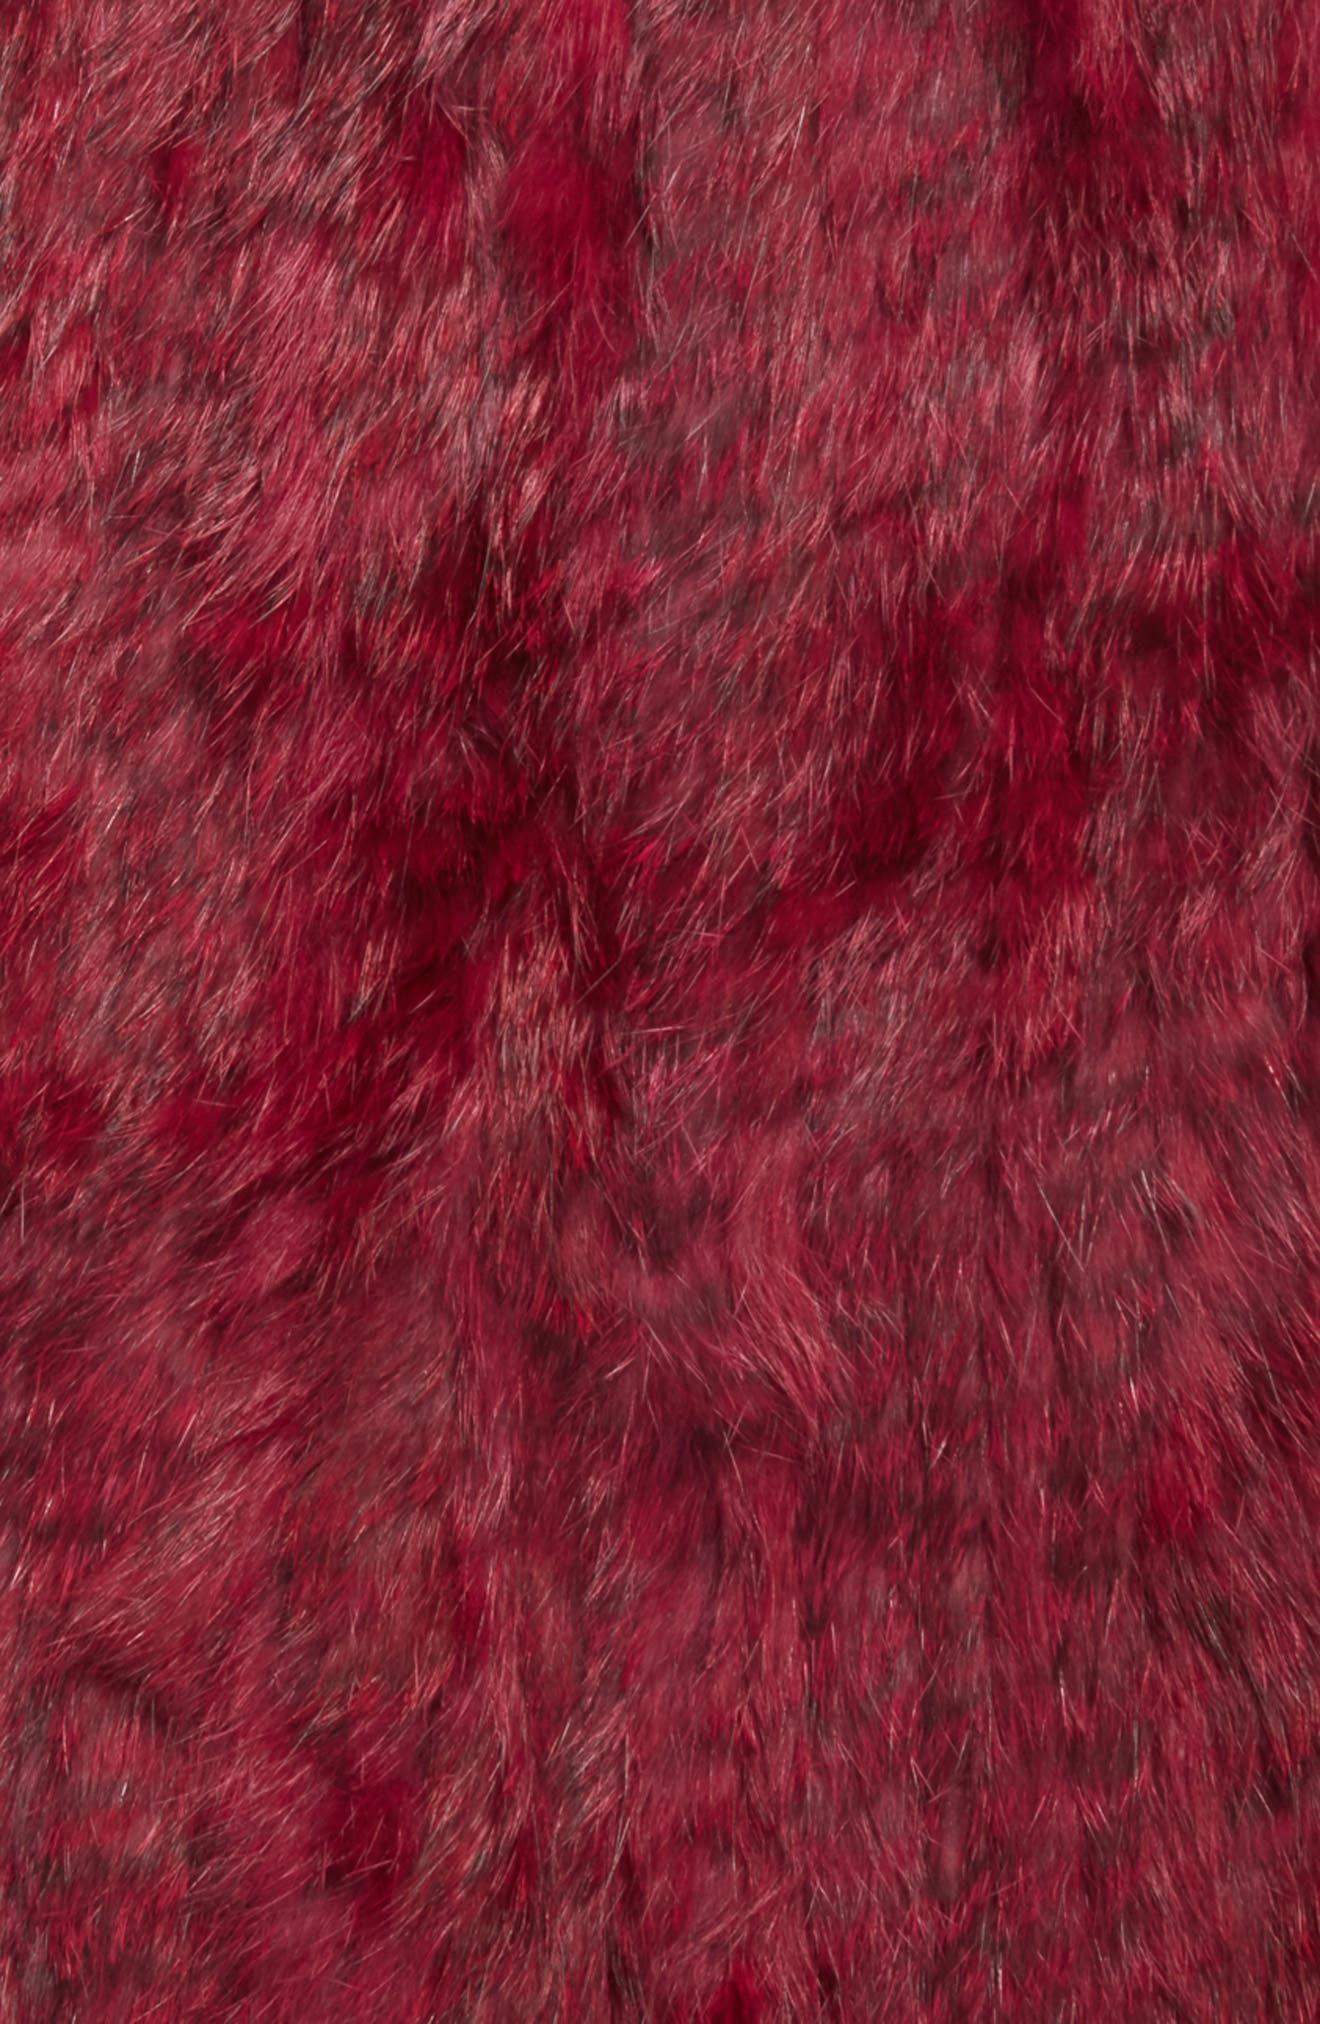 Overdyed Genuine Rabbit Fur Infinity Scarf,                             Alternate thumbnail 4, color,                             Ruby